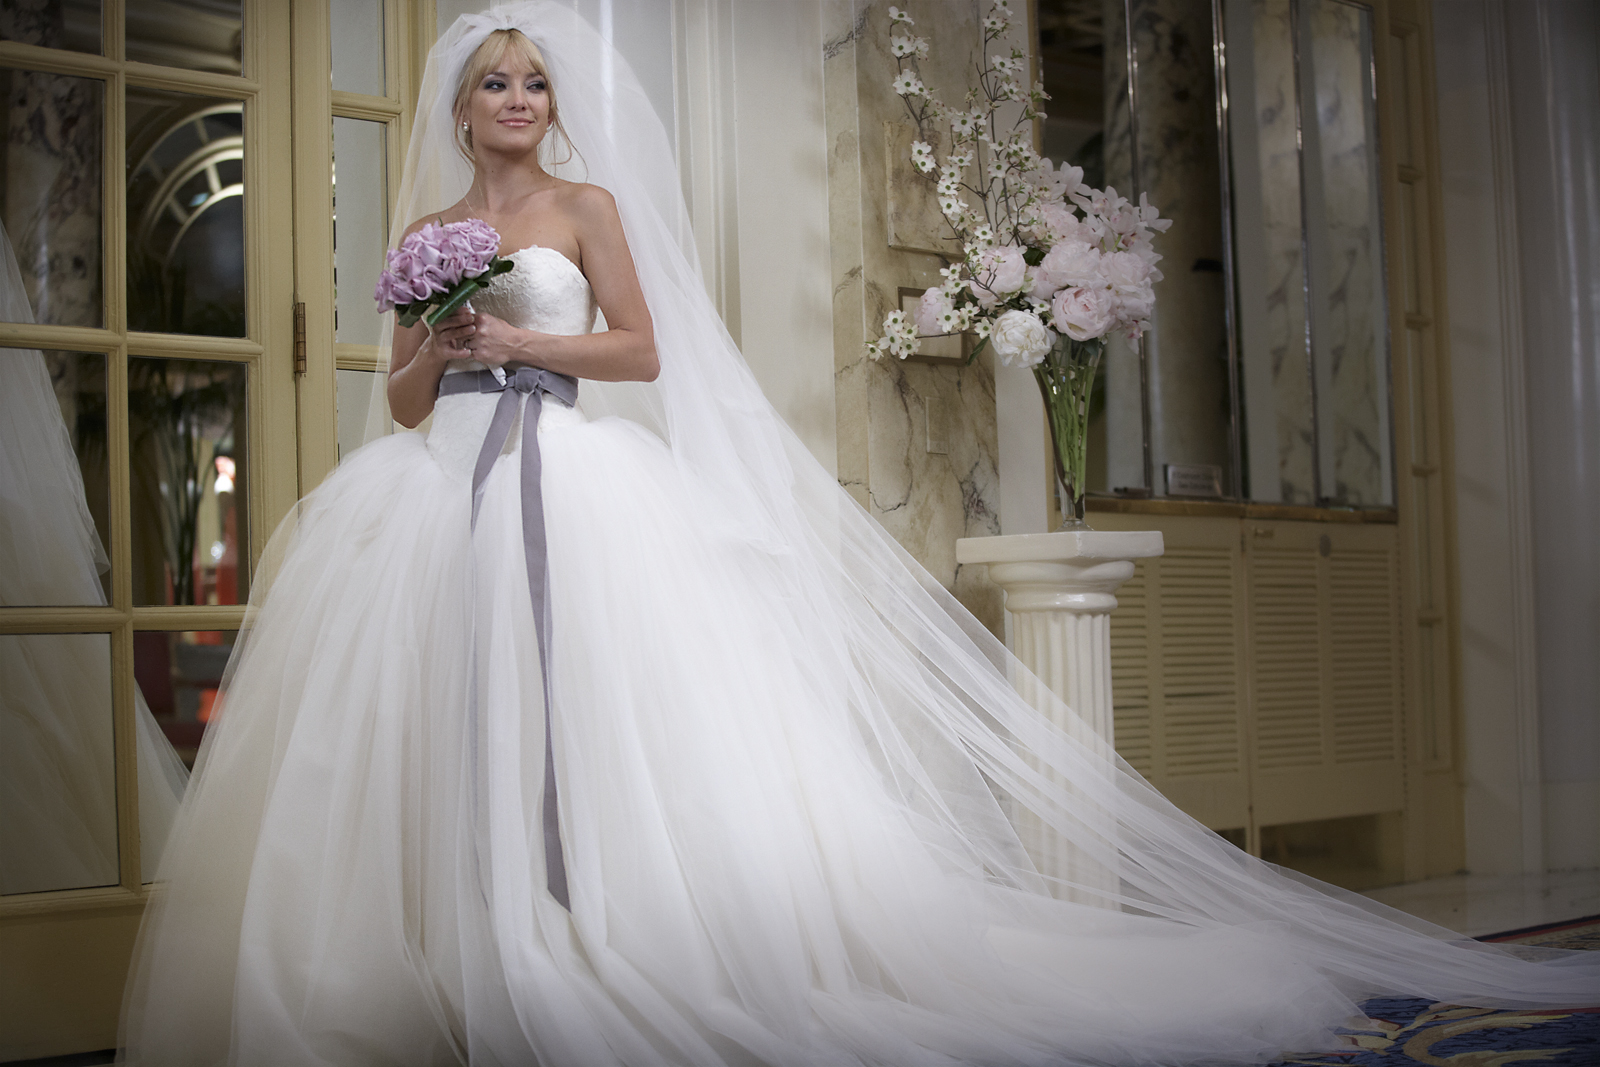 Bride Wars ©2009 20th Century Fox Film Corp.